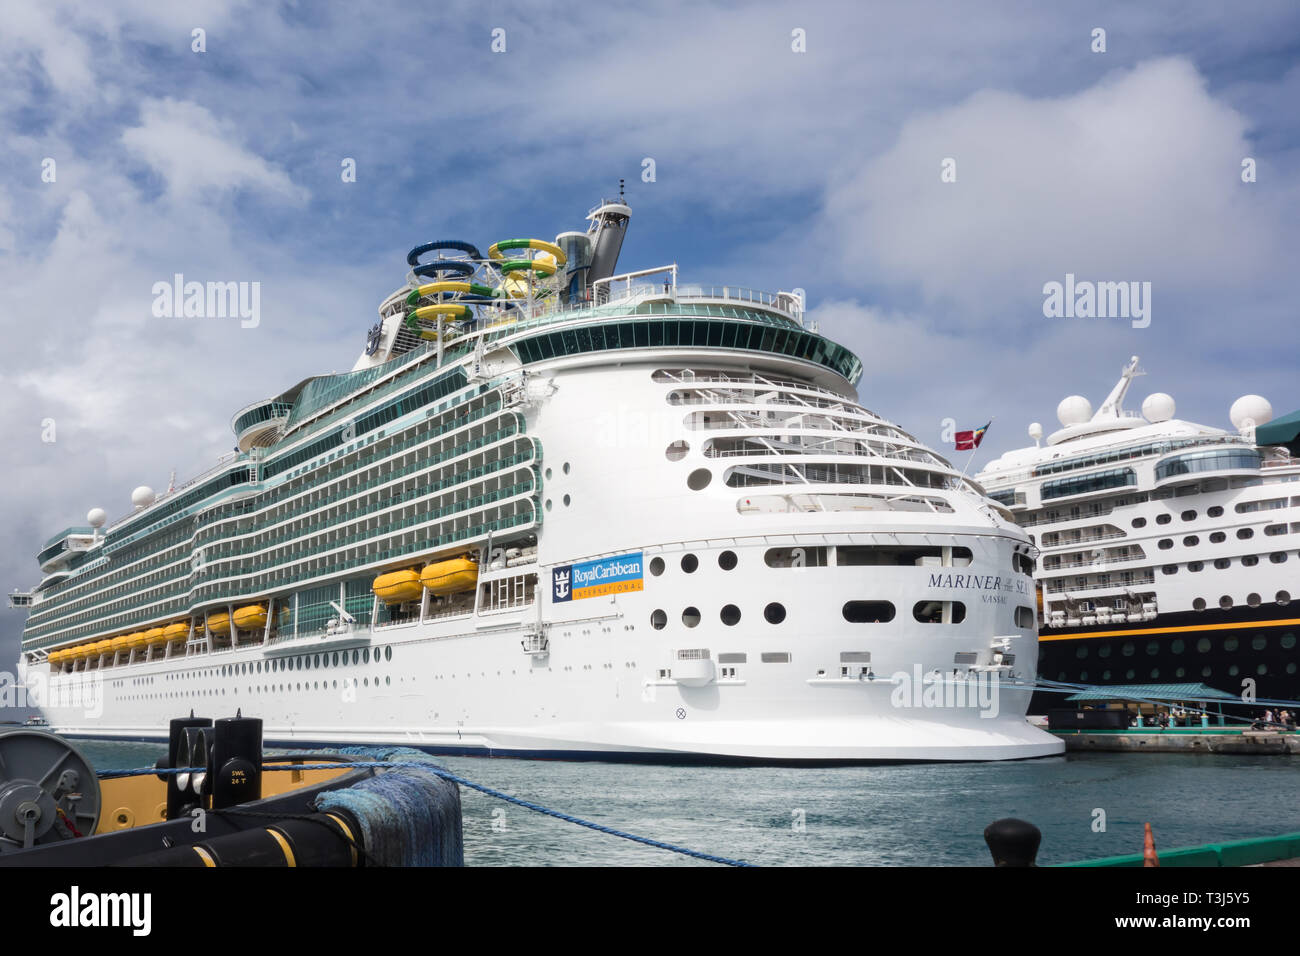 Mariner of the Seas owned by Royal Caribbean International is being docked at Nassau's cruise port terminal in Bahamas. - Stock Image